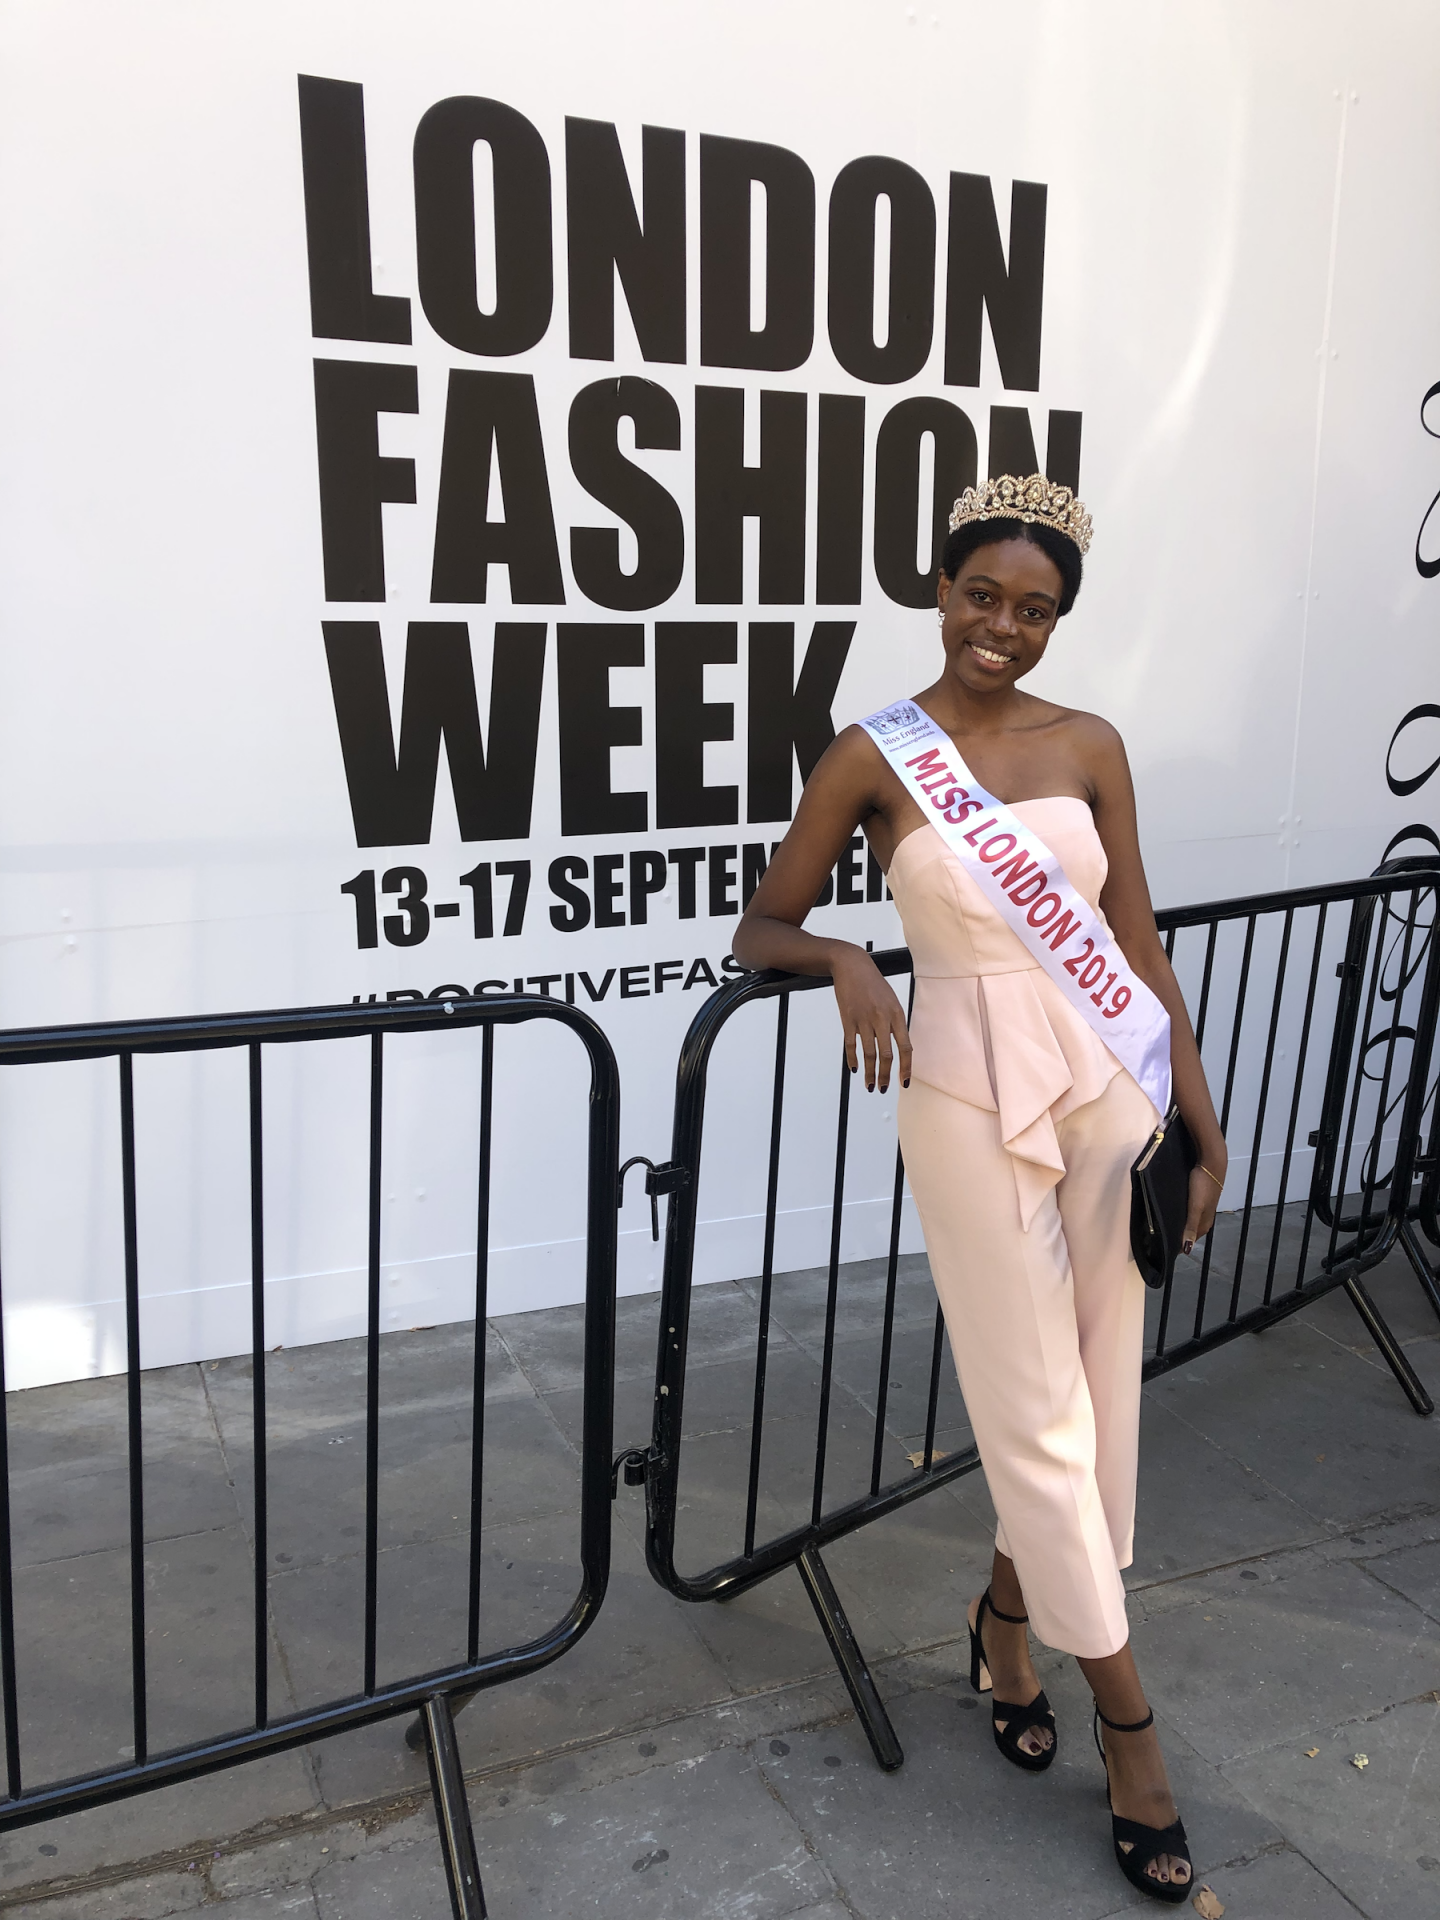 Miss London Vimbai Chapangu attends London Fashion Week – here's her review